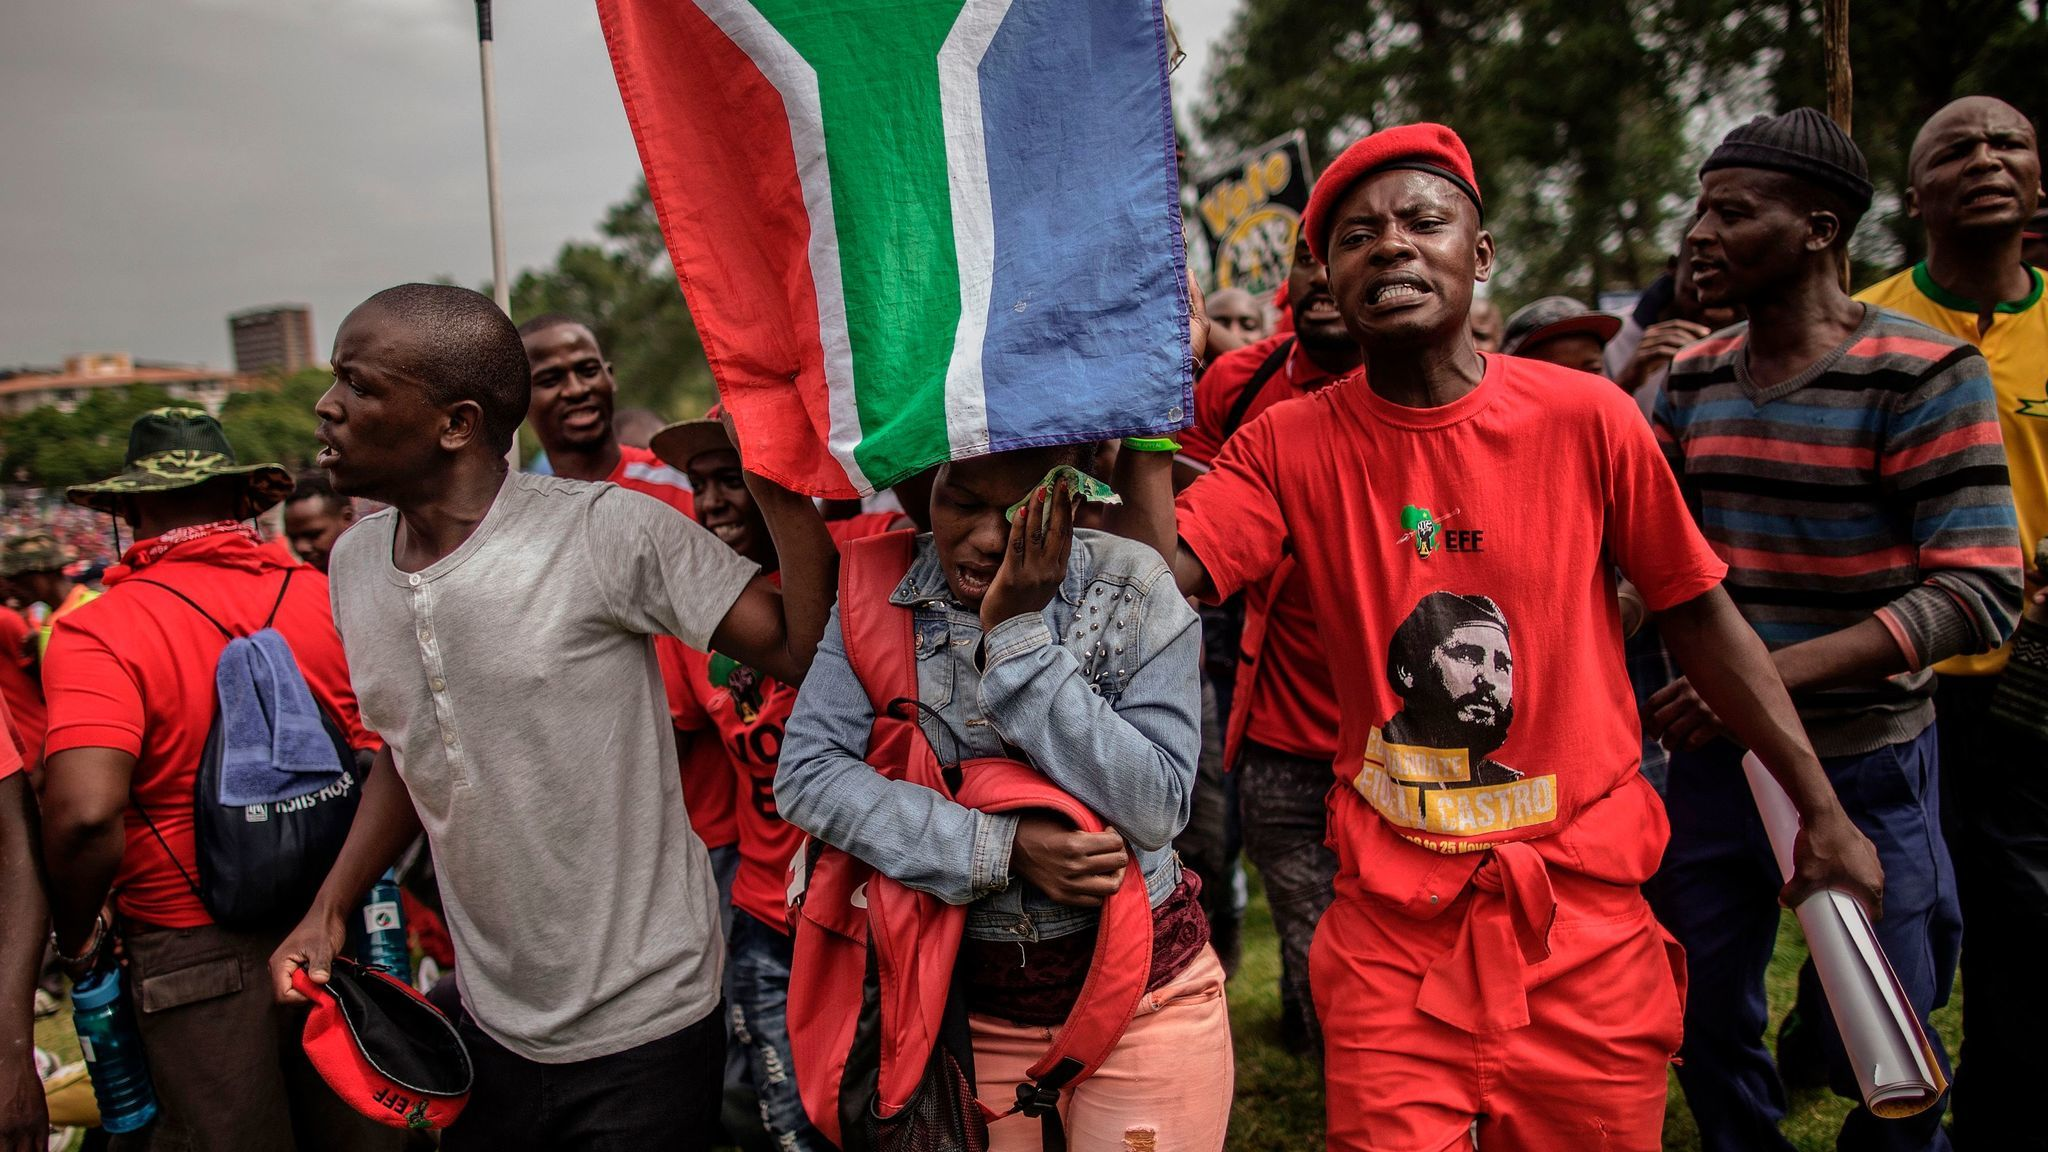 Members of the opposition Economic Freedom Fighters party at a protest calling for the resignation of President Jacob Zuma last month.